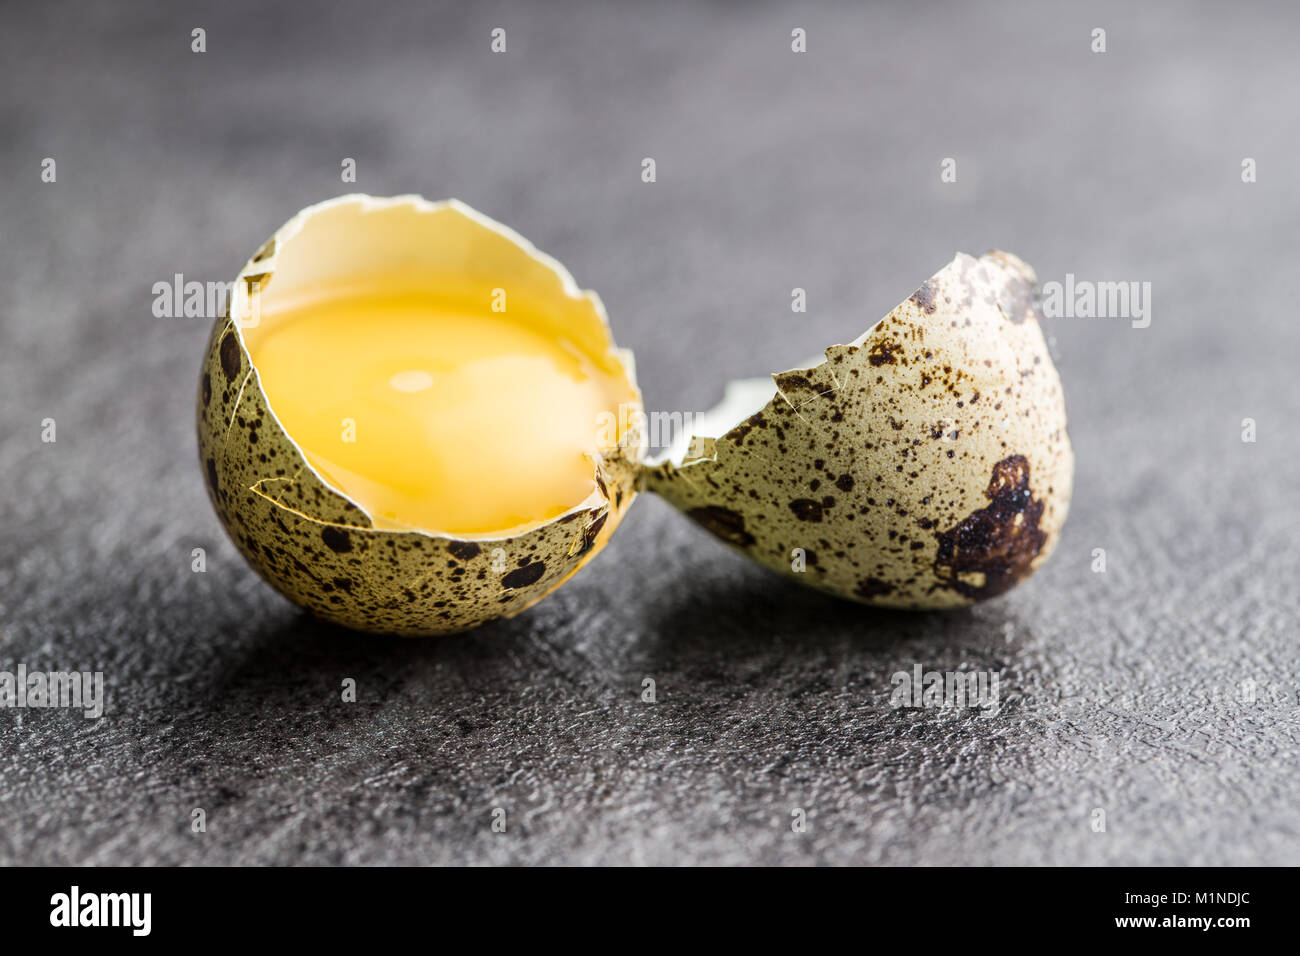 Broken guail eggs on old kitchen table. - Stock Image